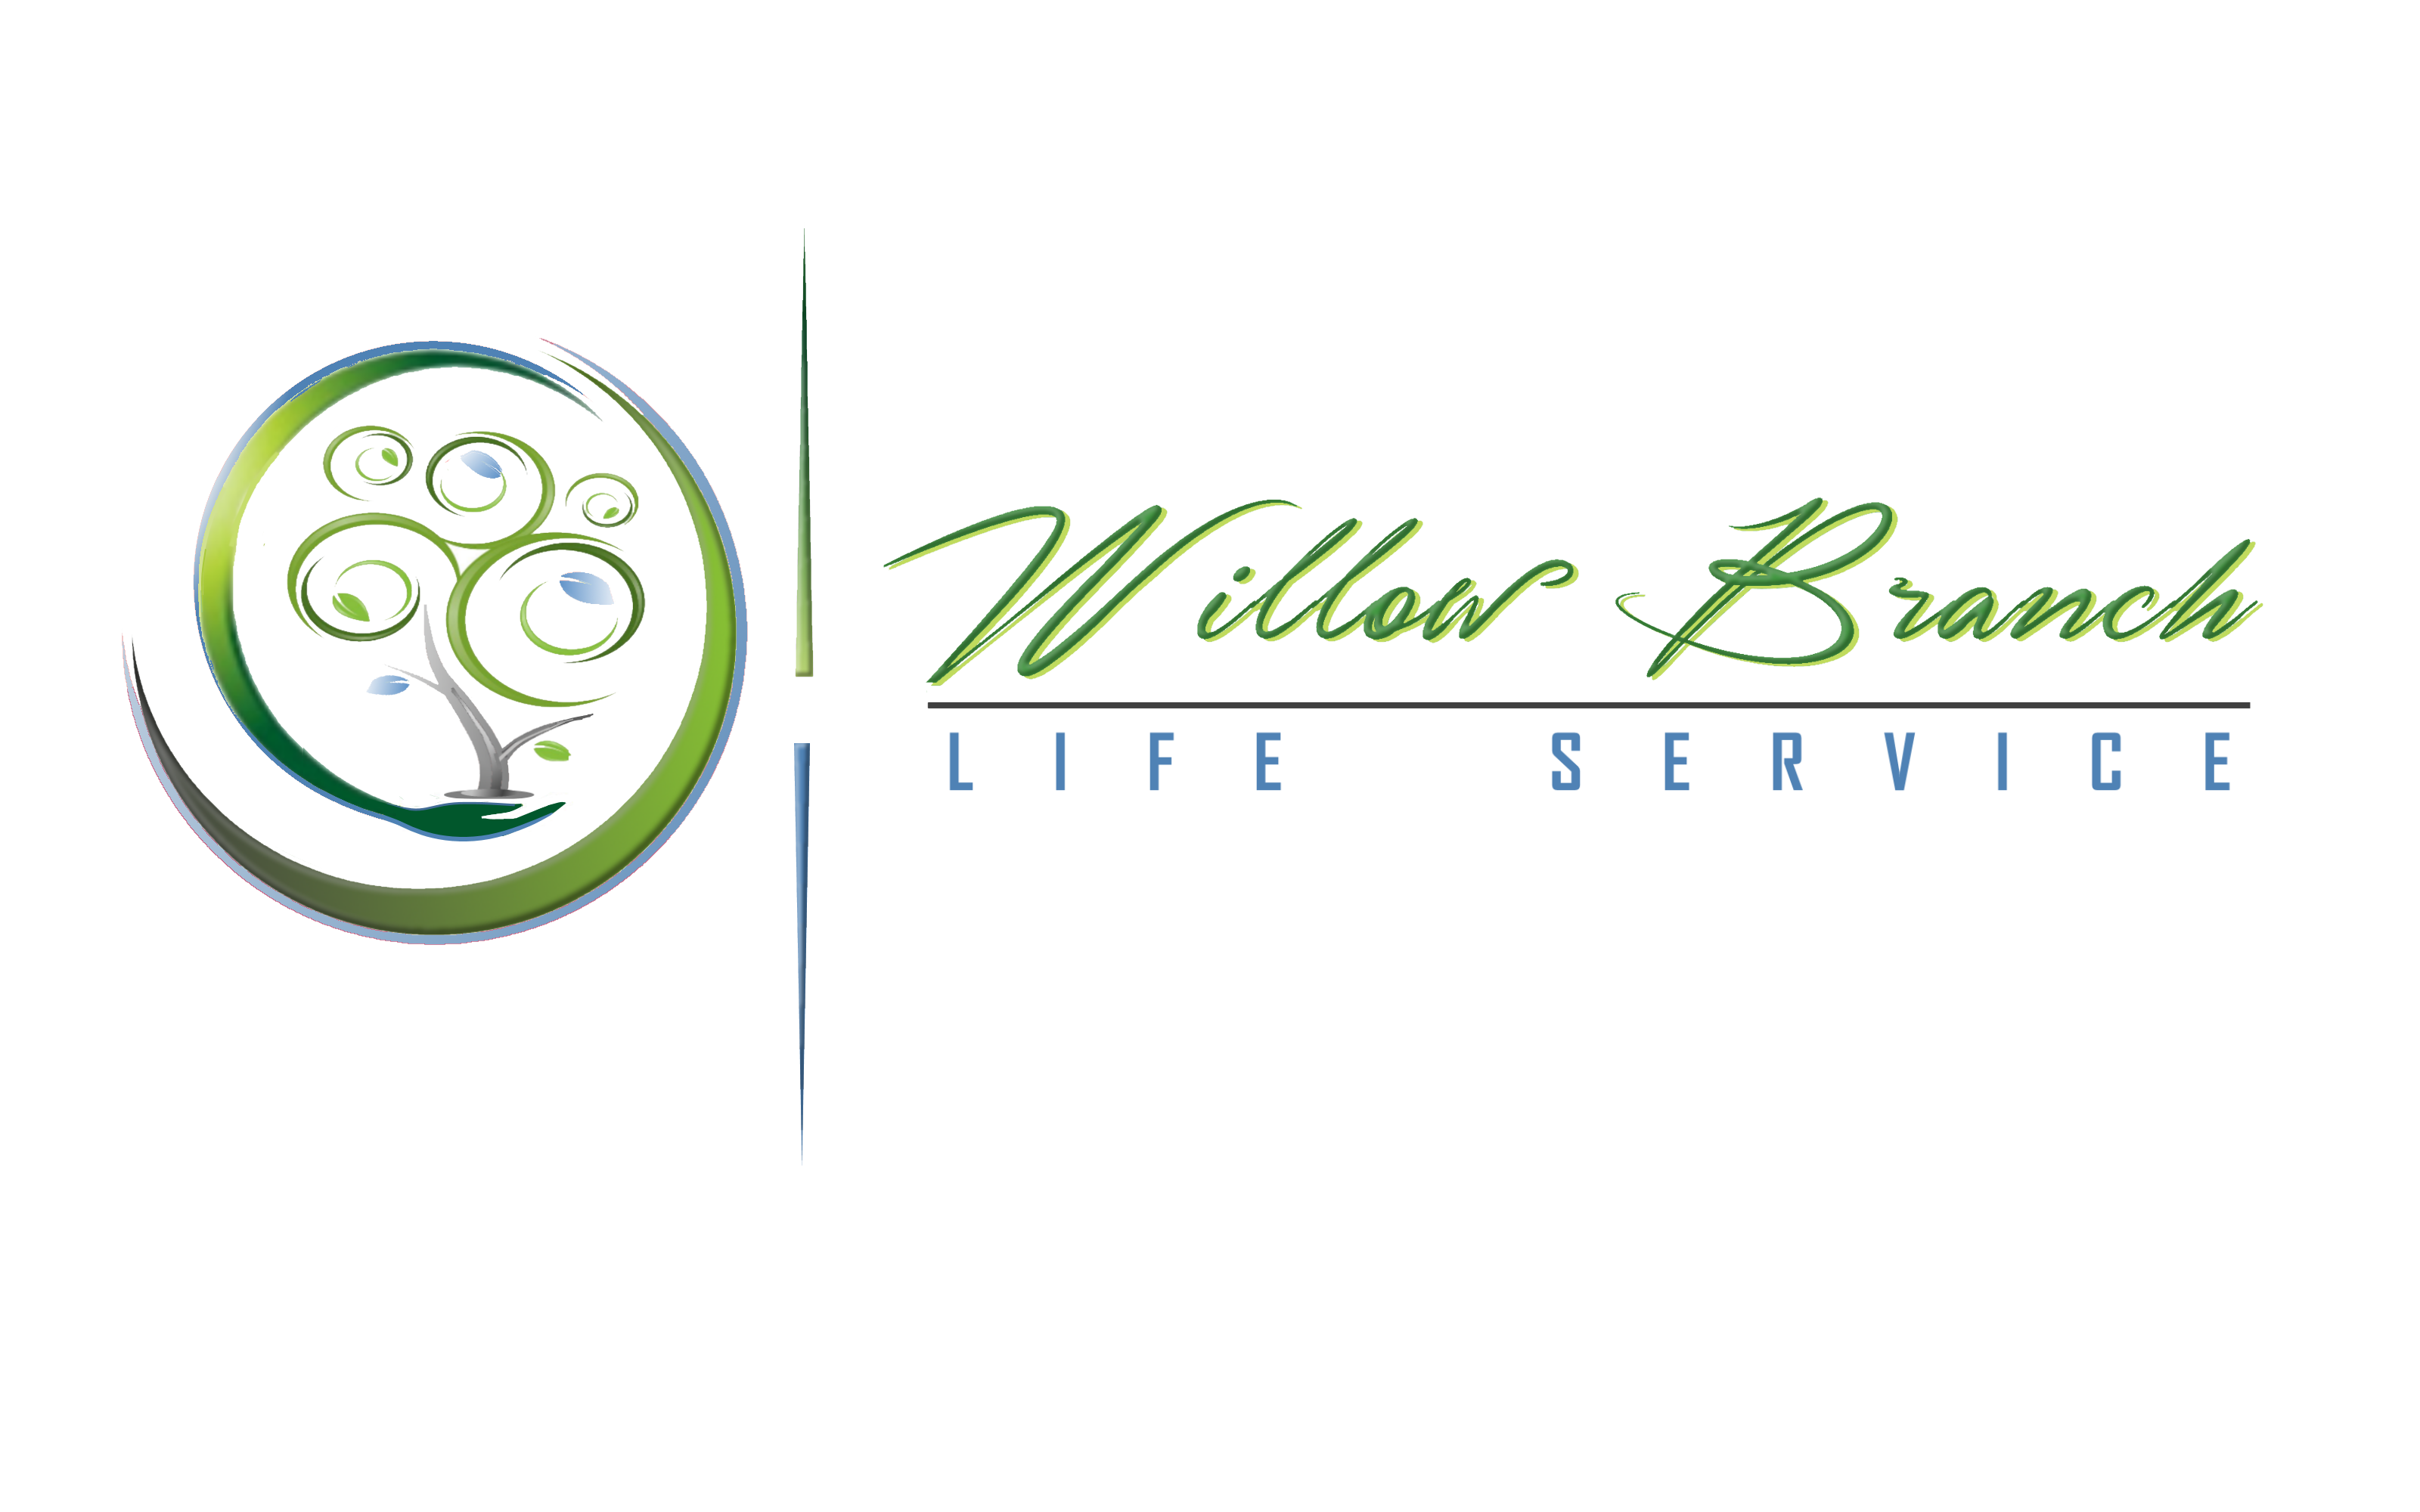 Logo Design by Roberto Bassi - Entry No. 420 in the Logo Design Contest Artistic Logo Design for Willow Branch Life Service.